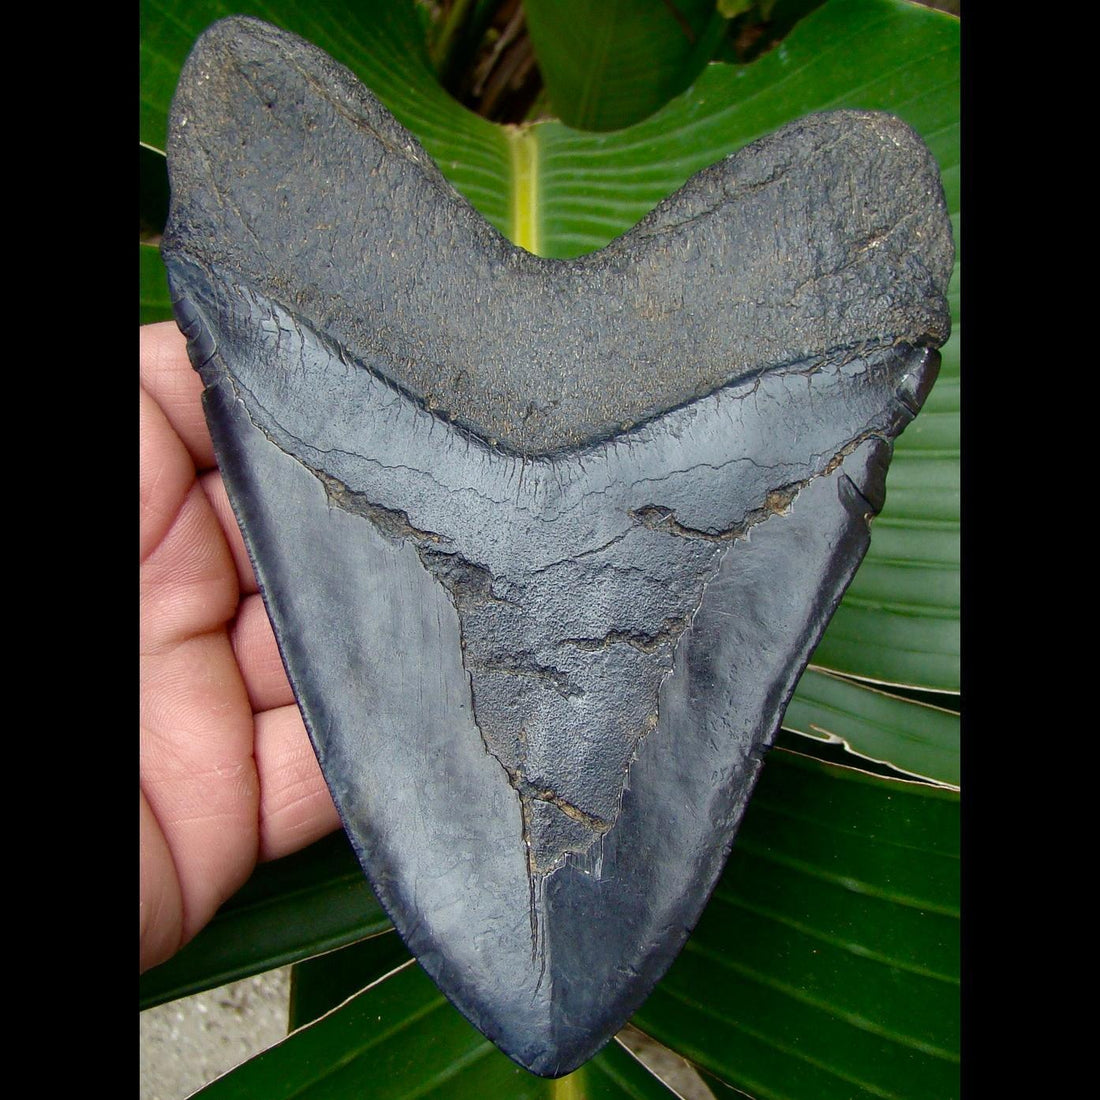 Megalodon Tooth OVERr 6 & 1/16 in. South Carolina Megalodon Shark Tooth